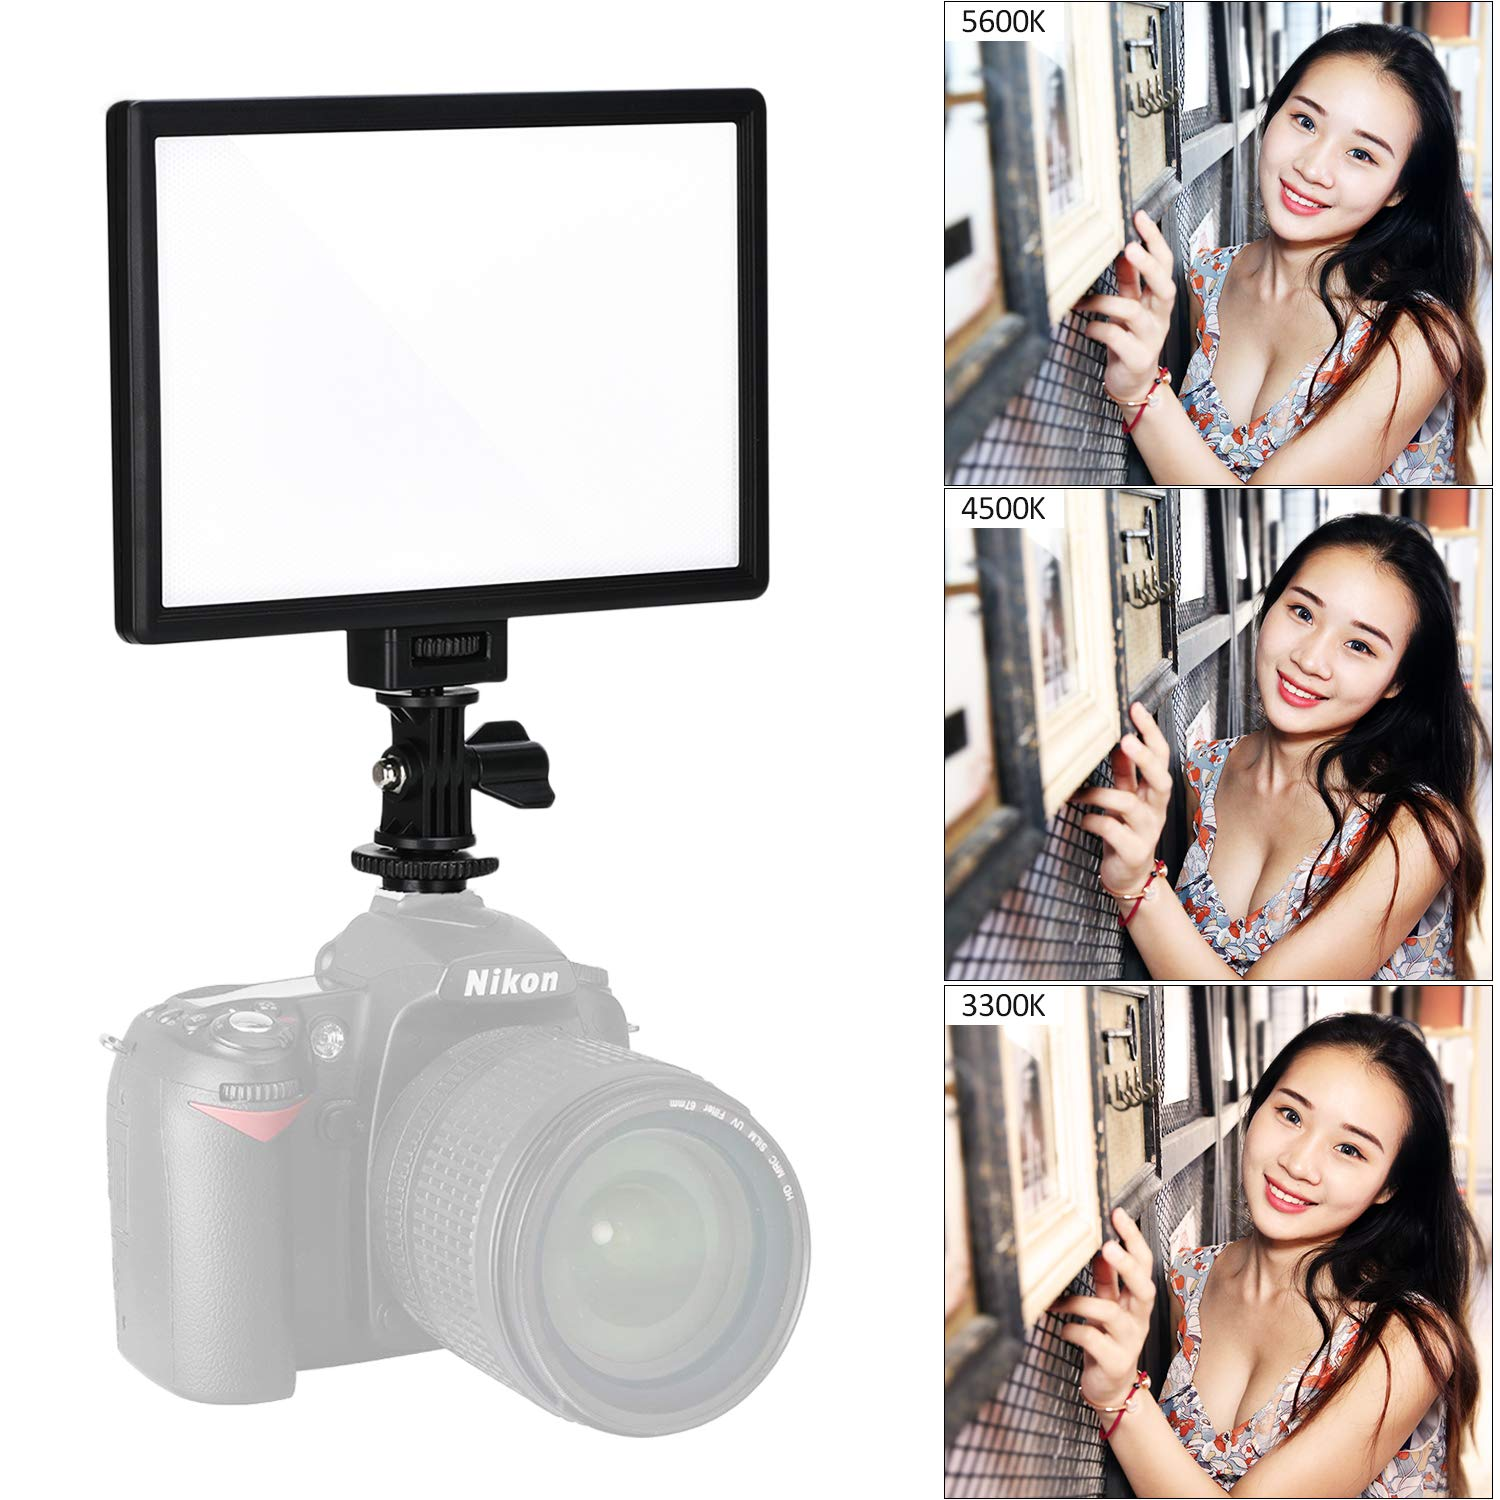 VILTROX L116T RA CRI95 Super Slim LED Light Panel,3300K-5600K LED Video Light, LCD Display Screen, with hot Shoe Ball Mount,Color Temperature and Brightness can be Adjusted JYC Technology (HK) Co. Ltd